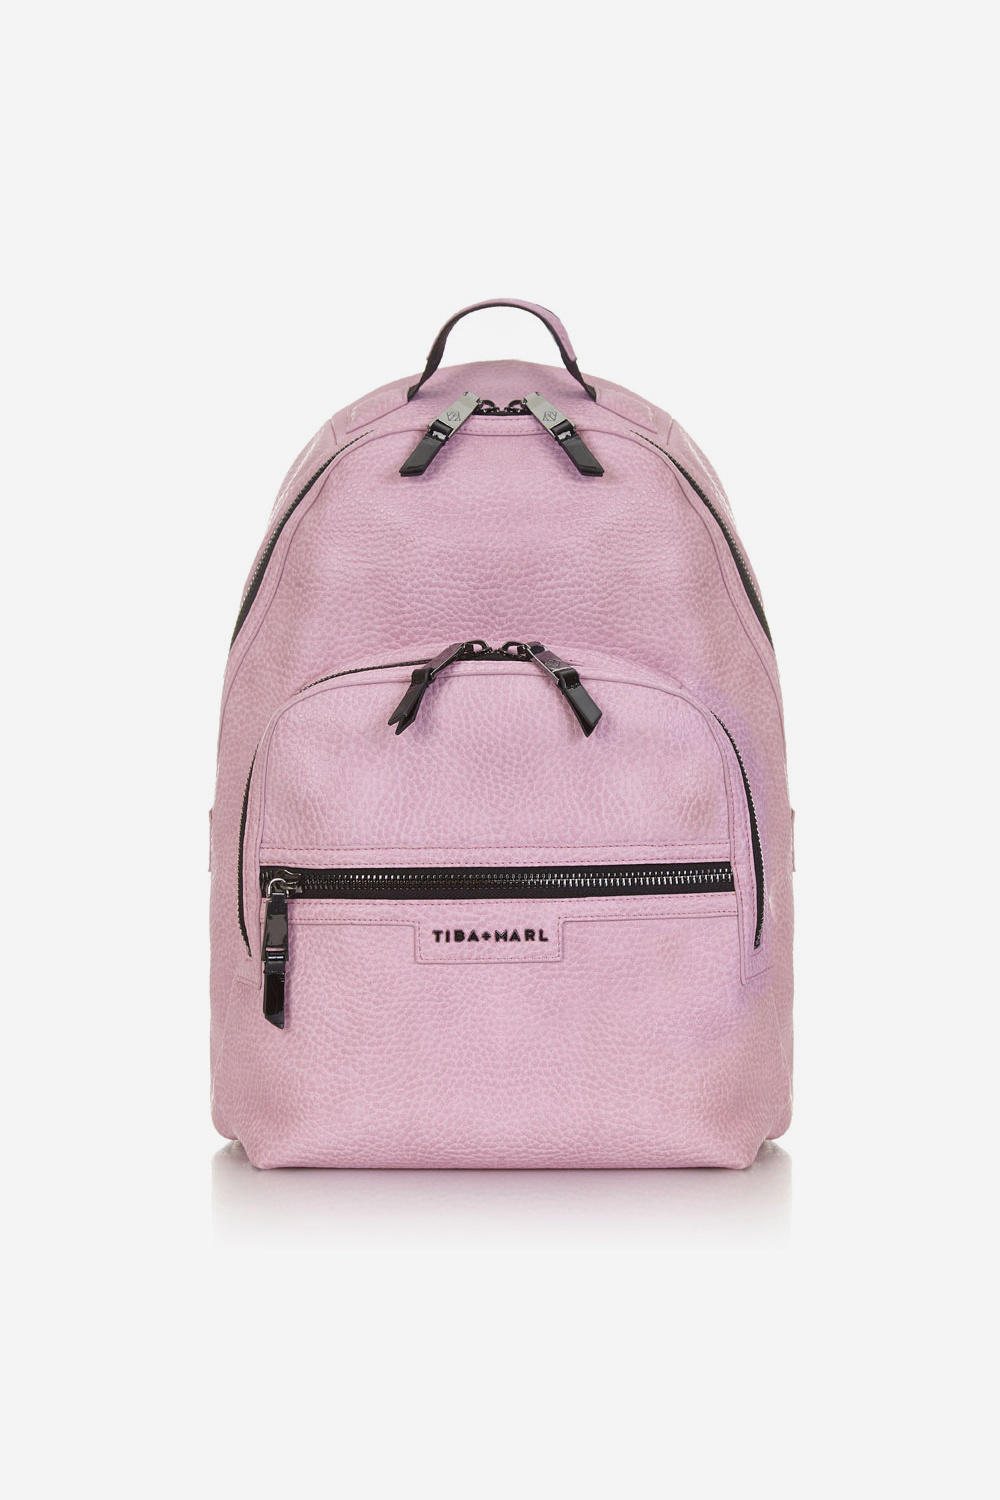 Pink changing bag, £130 Tiba and Marl